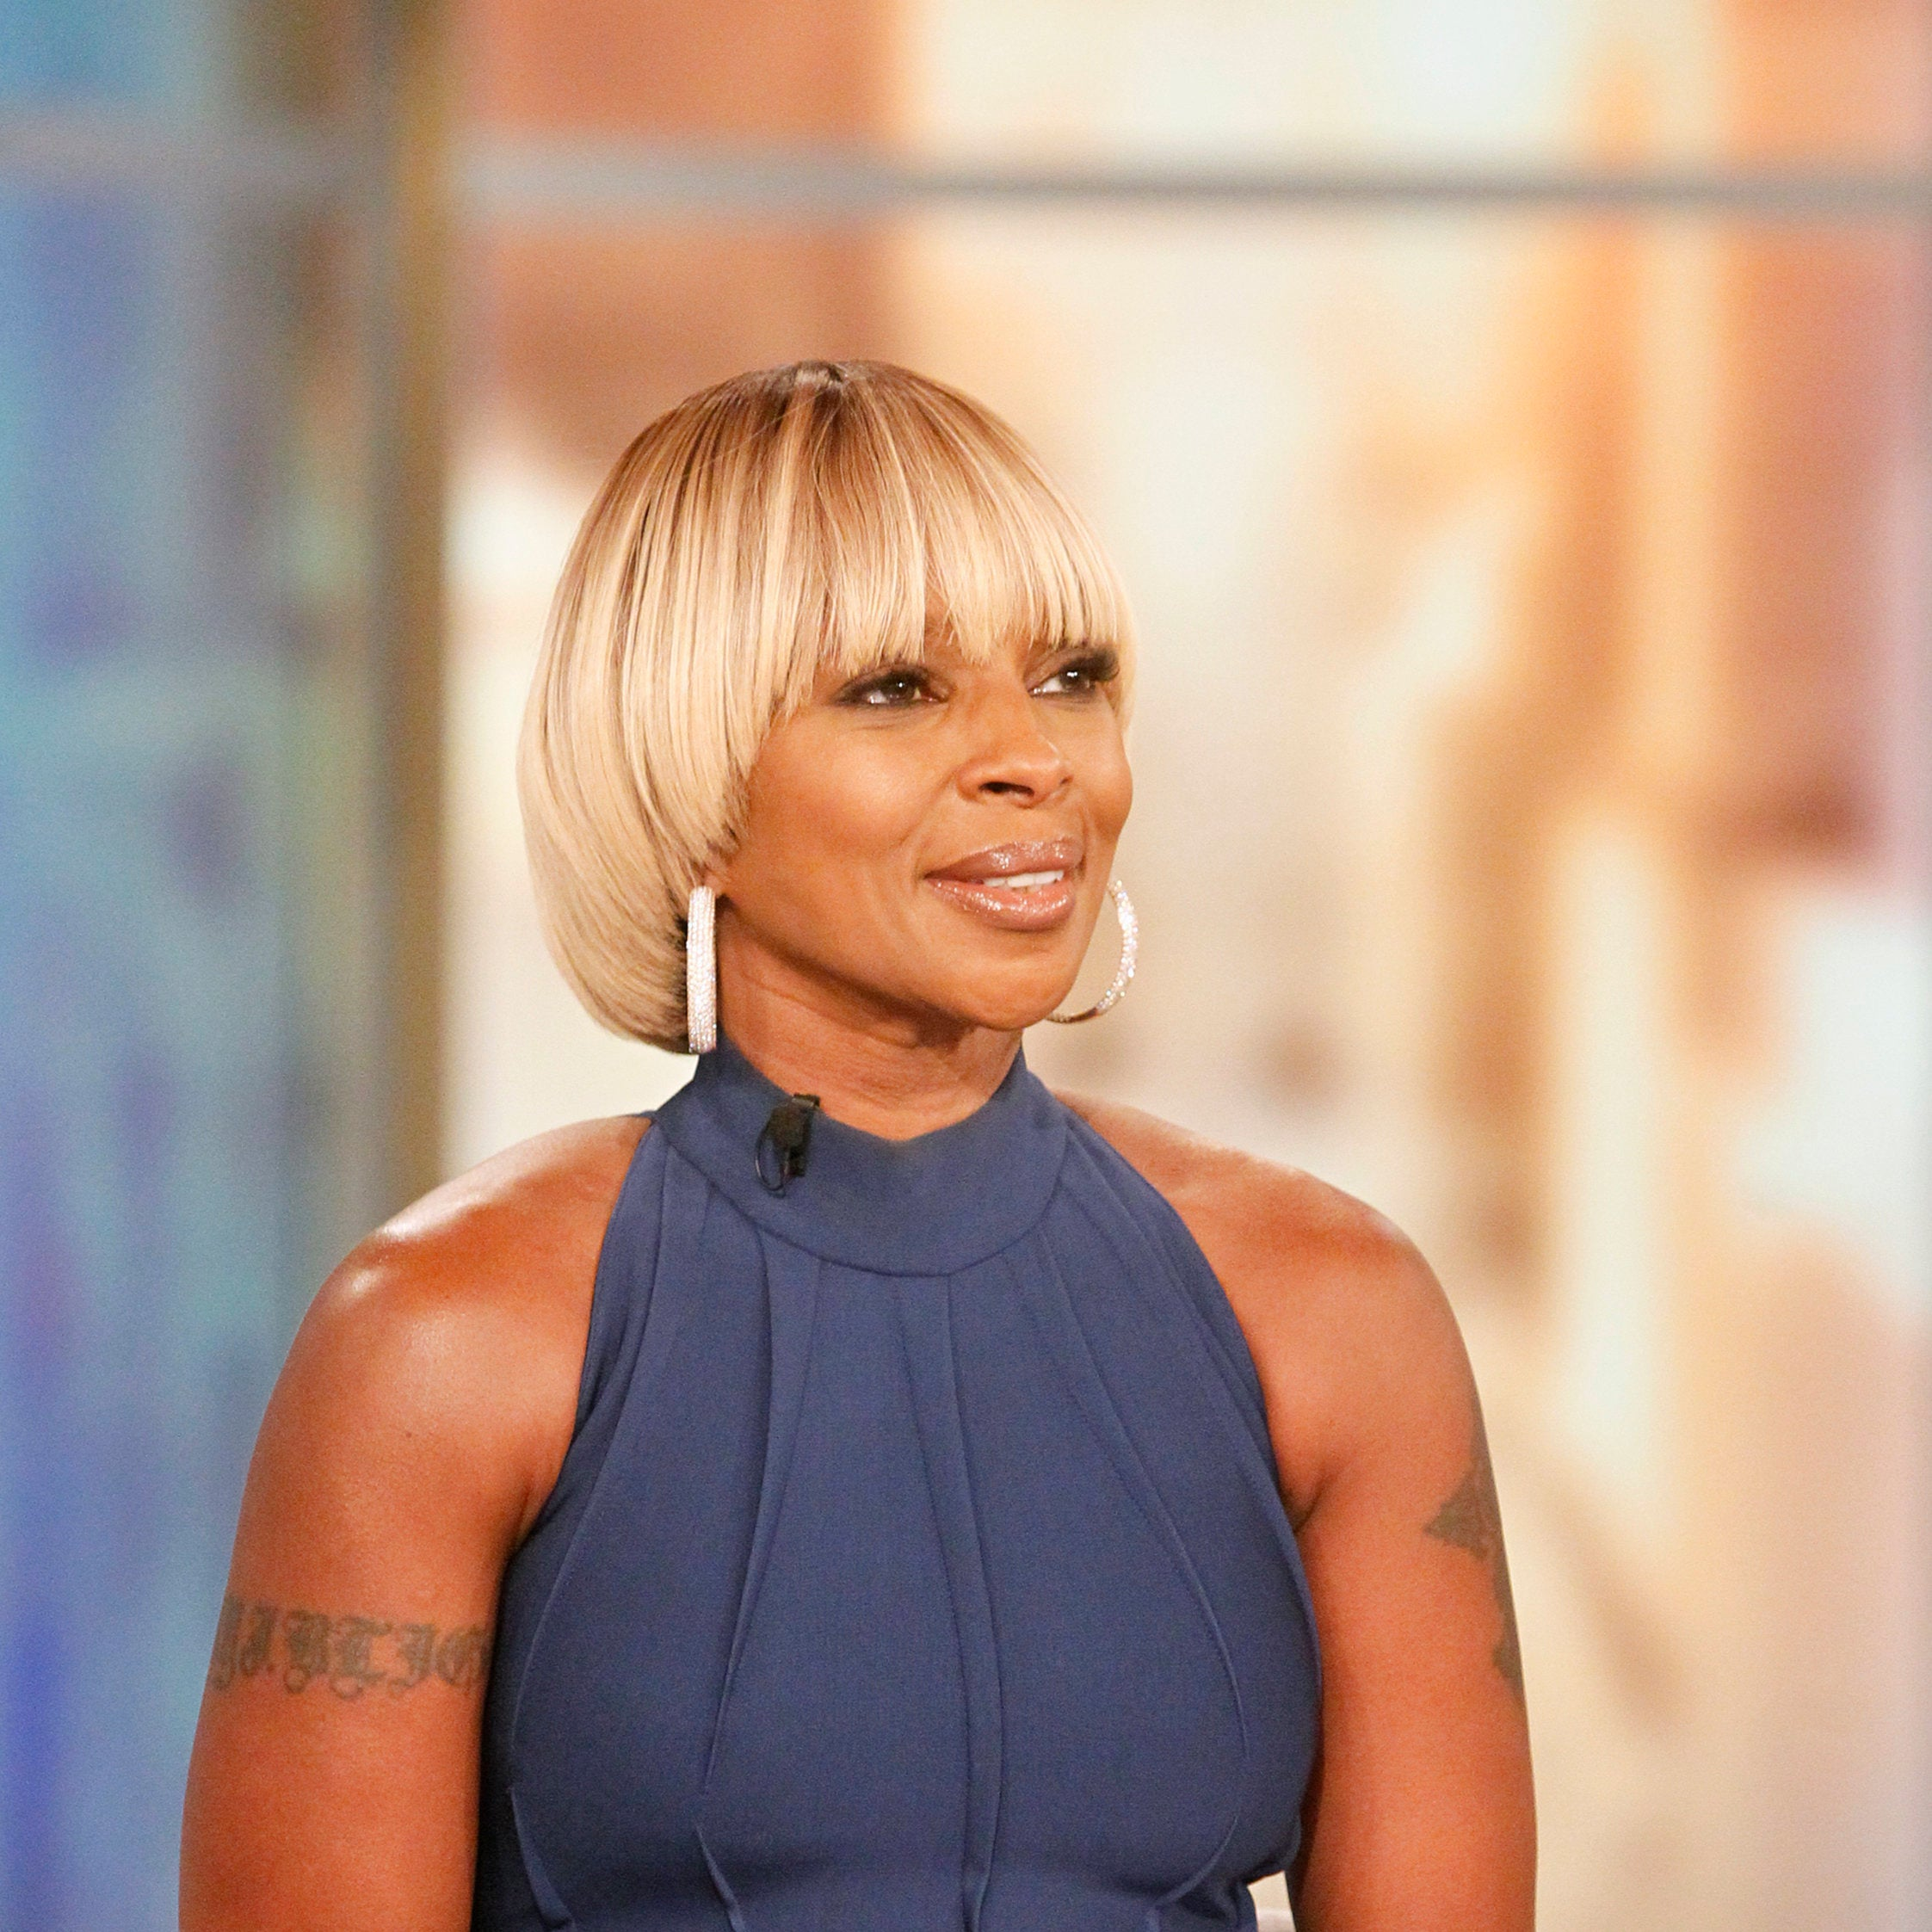 The Internet Is Having A Field Day With This This Mary J. Blige,Clinton Interview